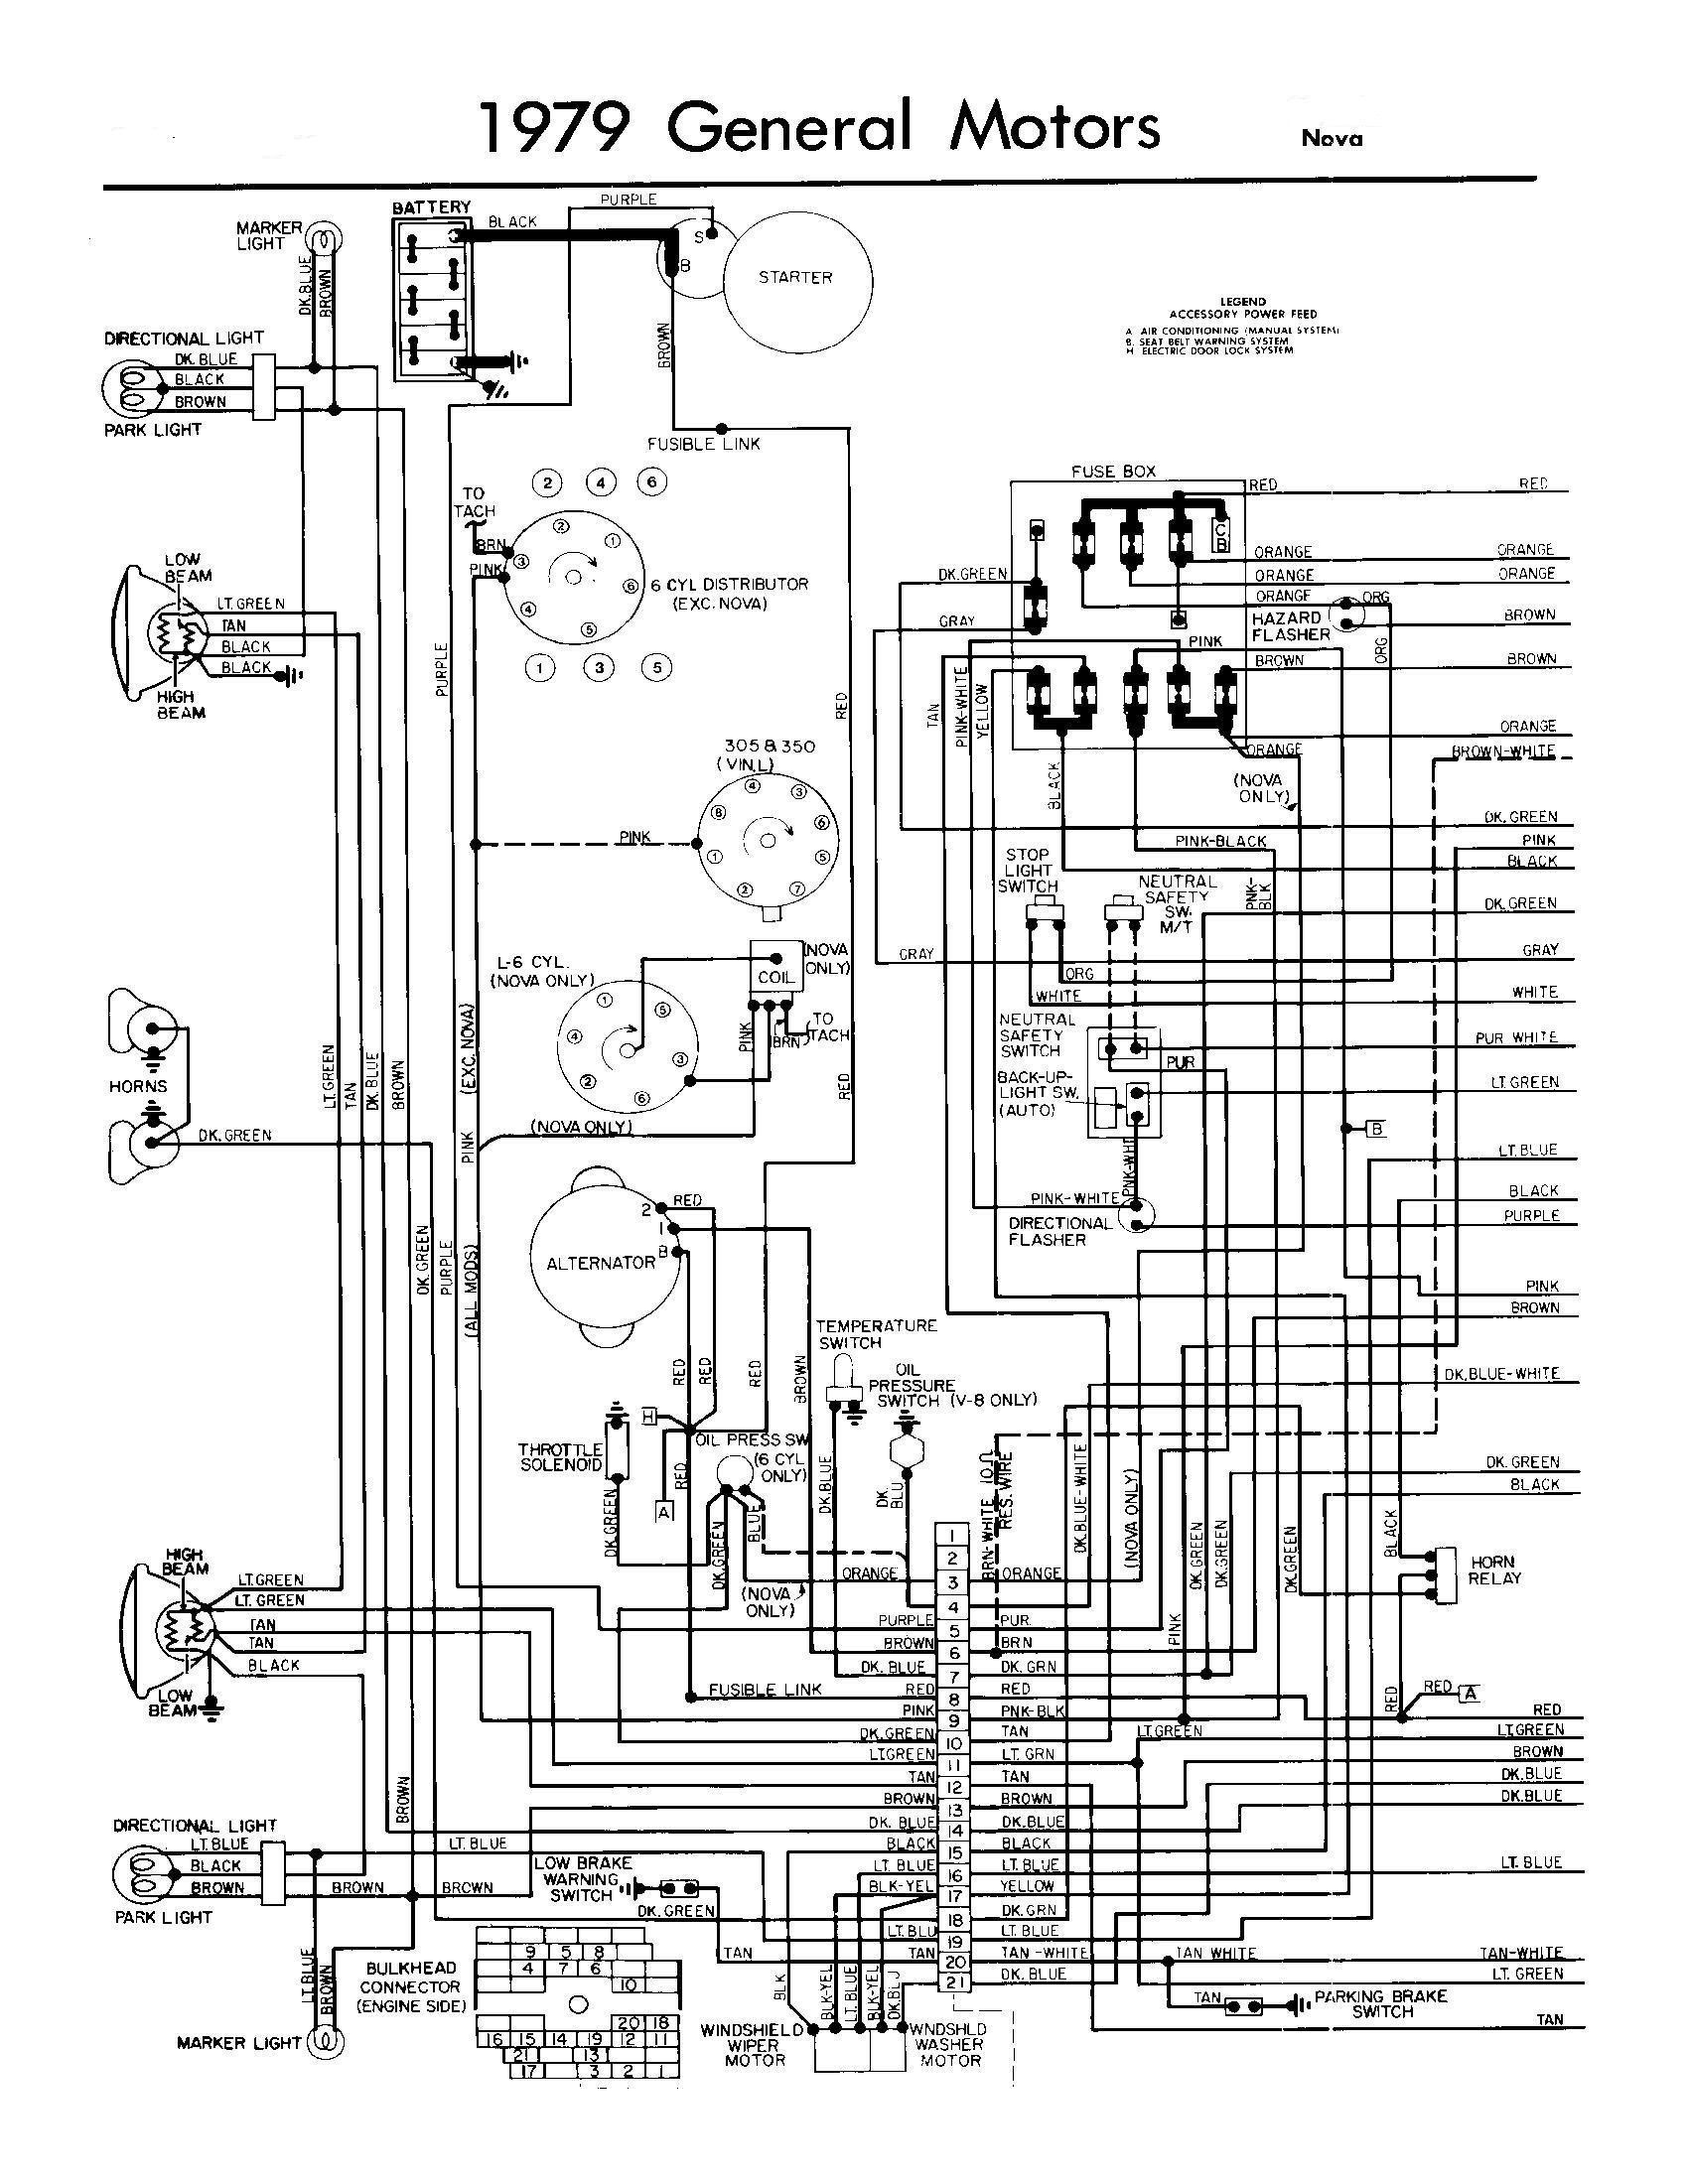 1969 corvette fuse panel diagram trusted wiring diagram u2022 rh  soulmatestyle co 1982 Corvette Fuse Box Location 1984 Corvette Fuse Box  Location